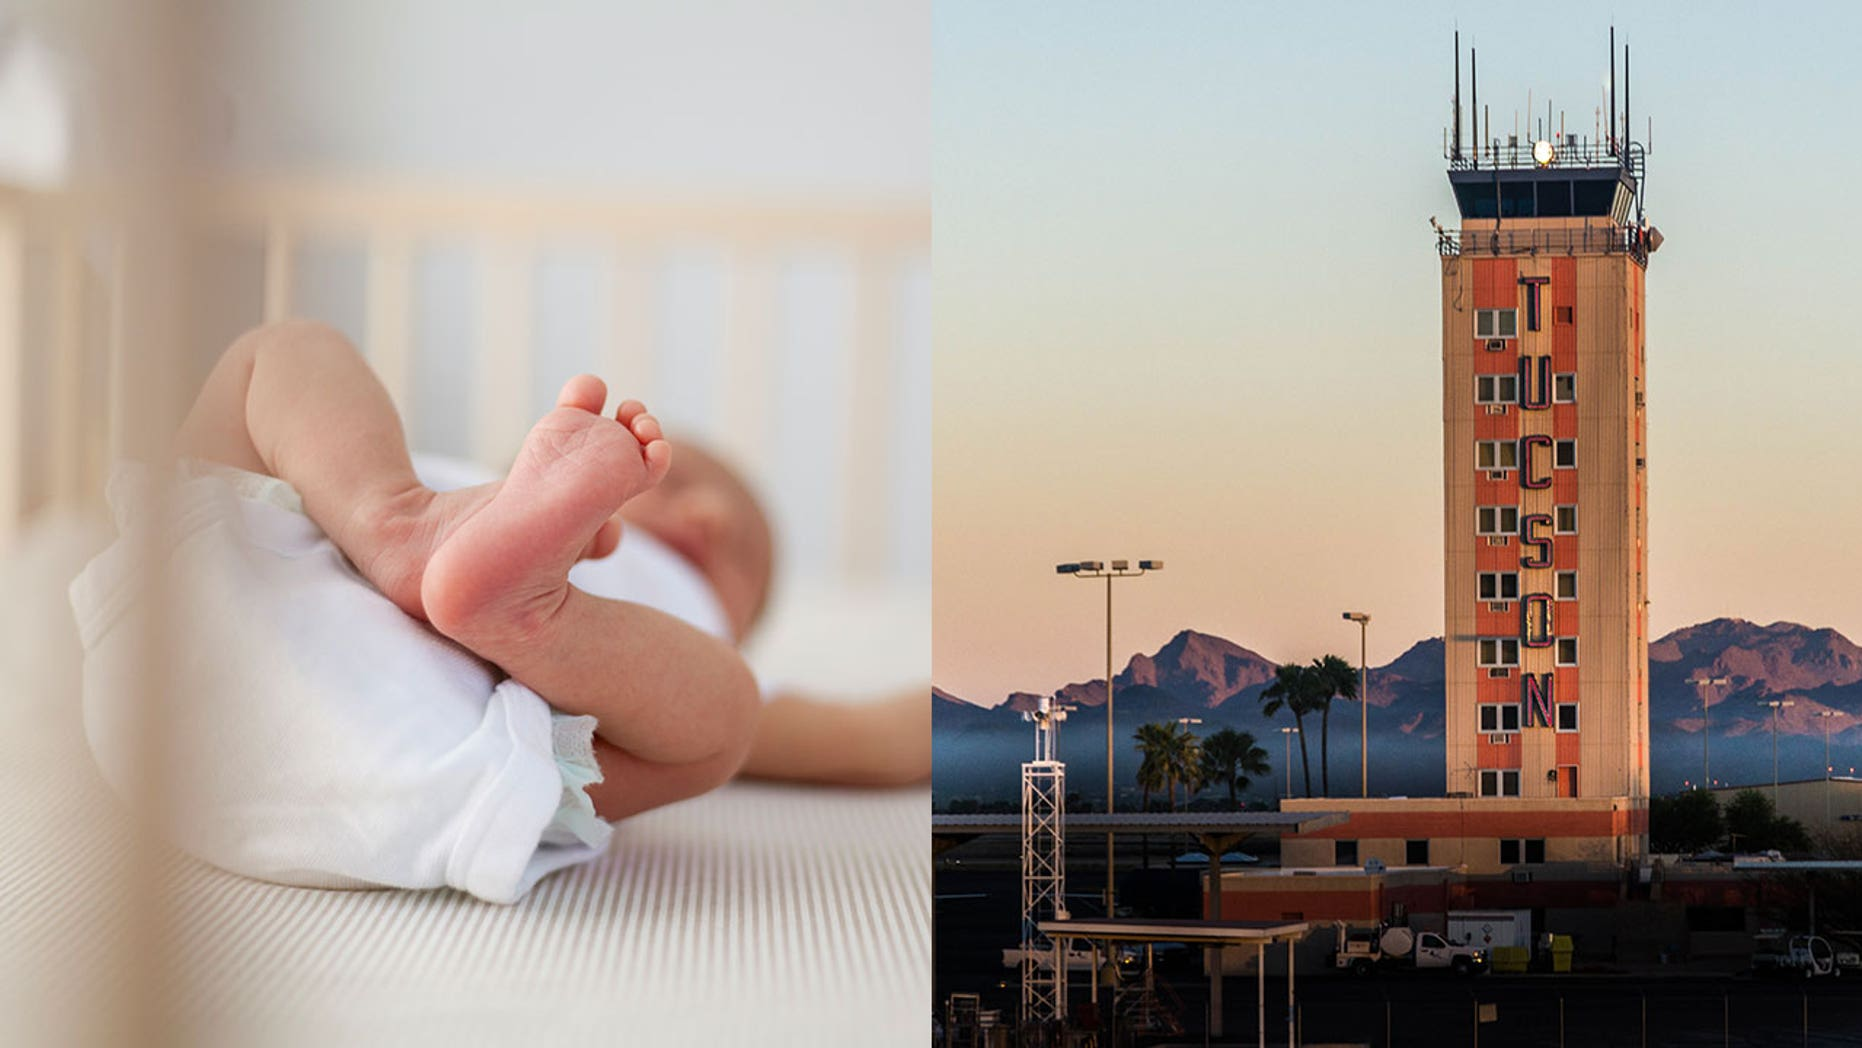 Officials at the Tucson International Airport have confirmed that a newborn baby boy was abandoned in a pre-security area on Sunday night.